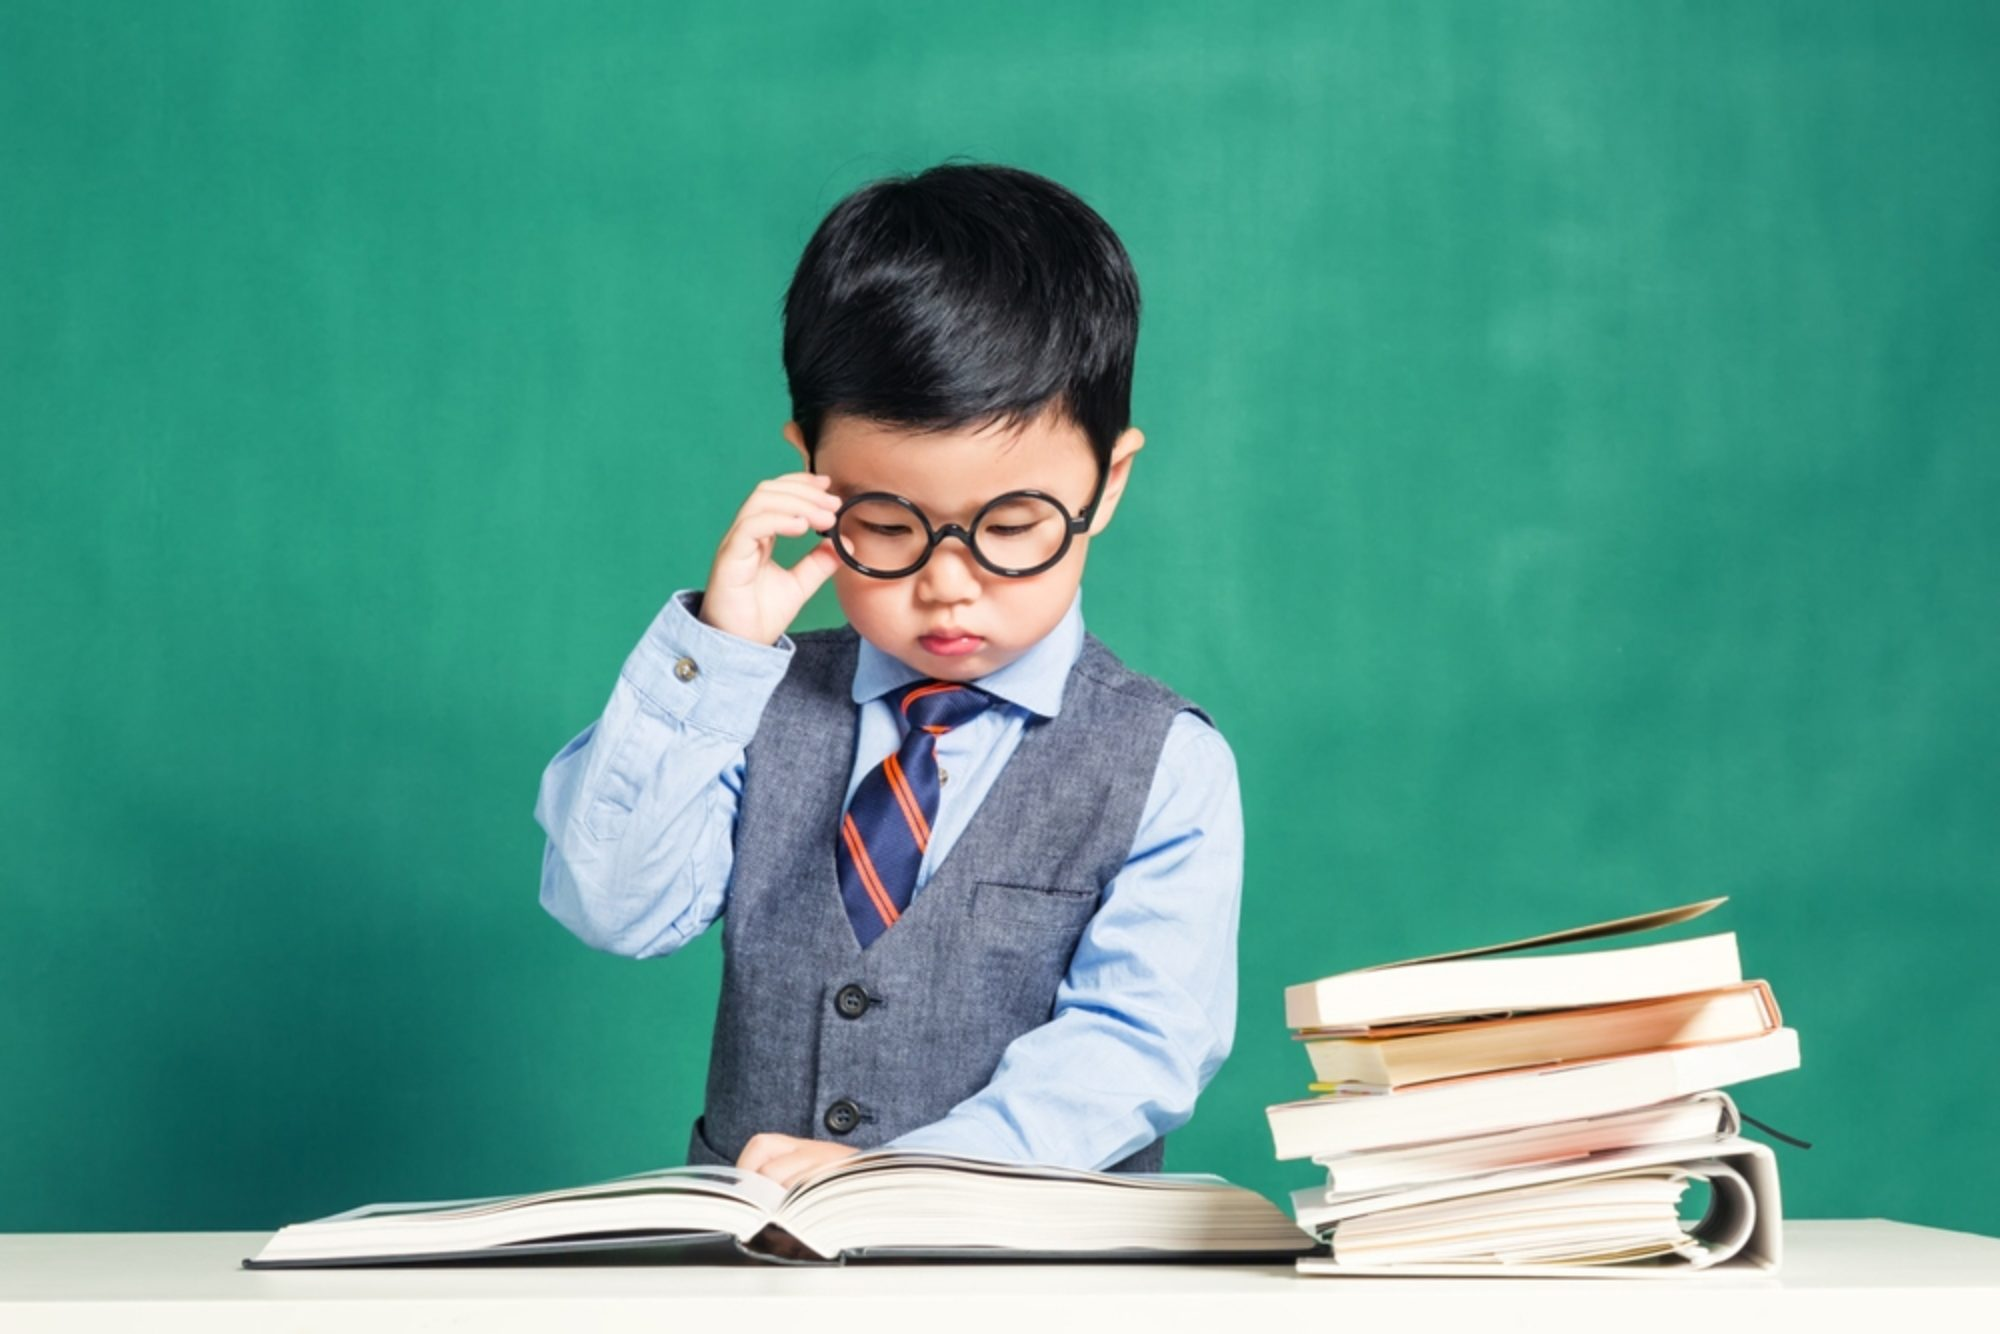 Boy in glasses reading a pile of books